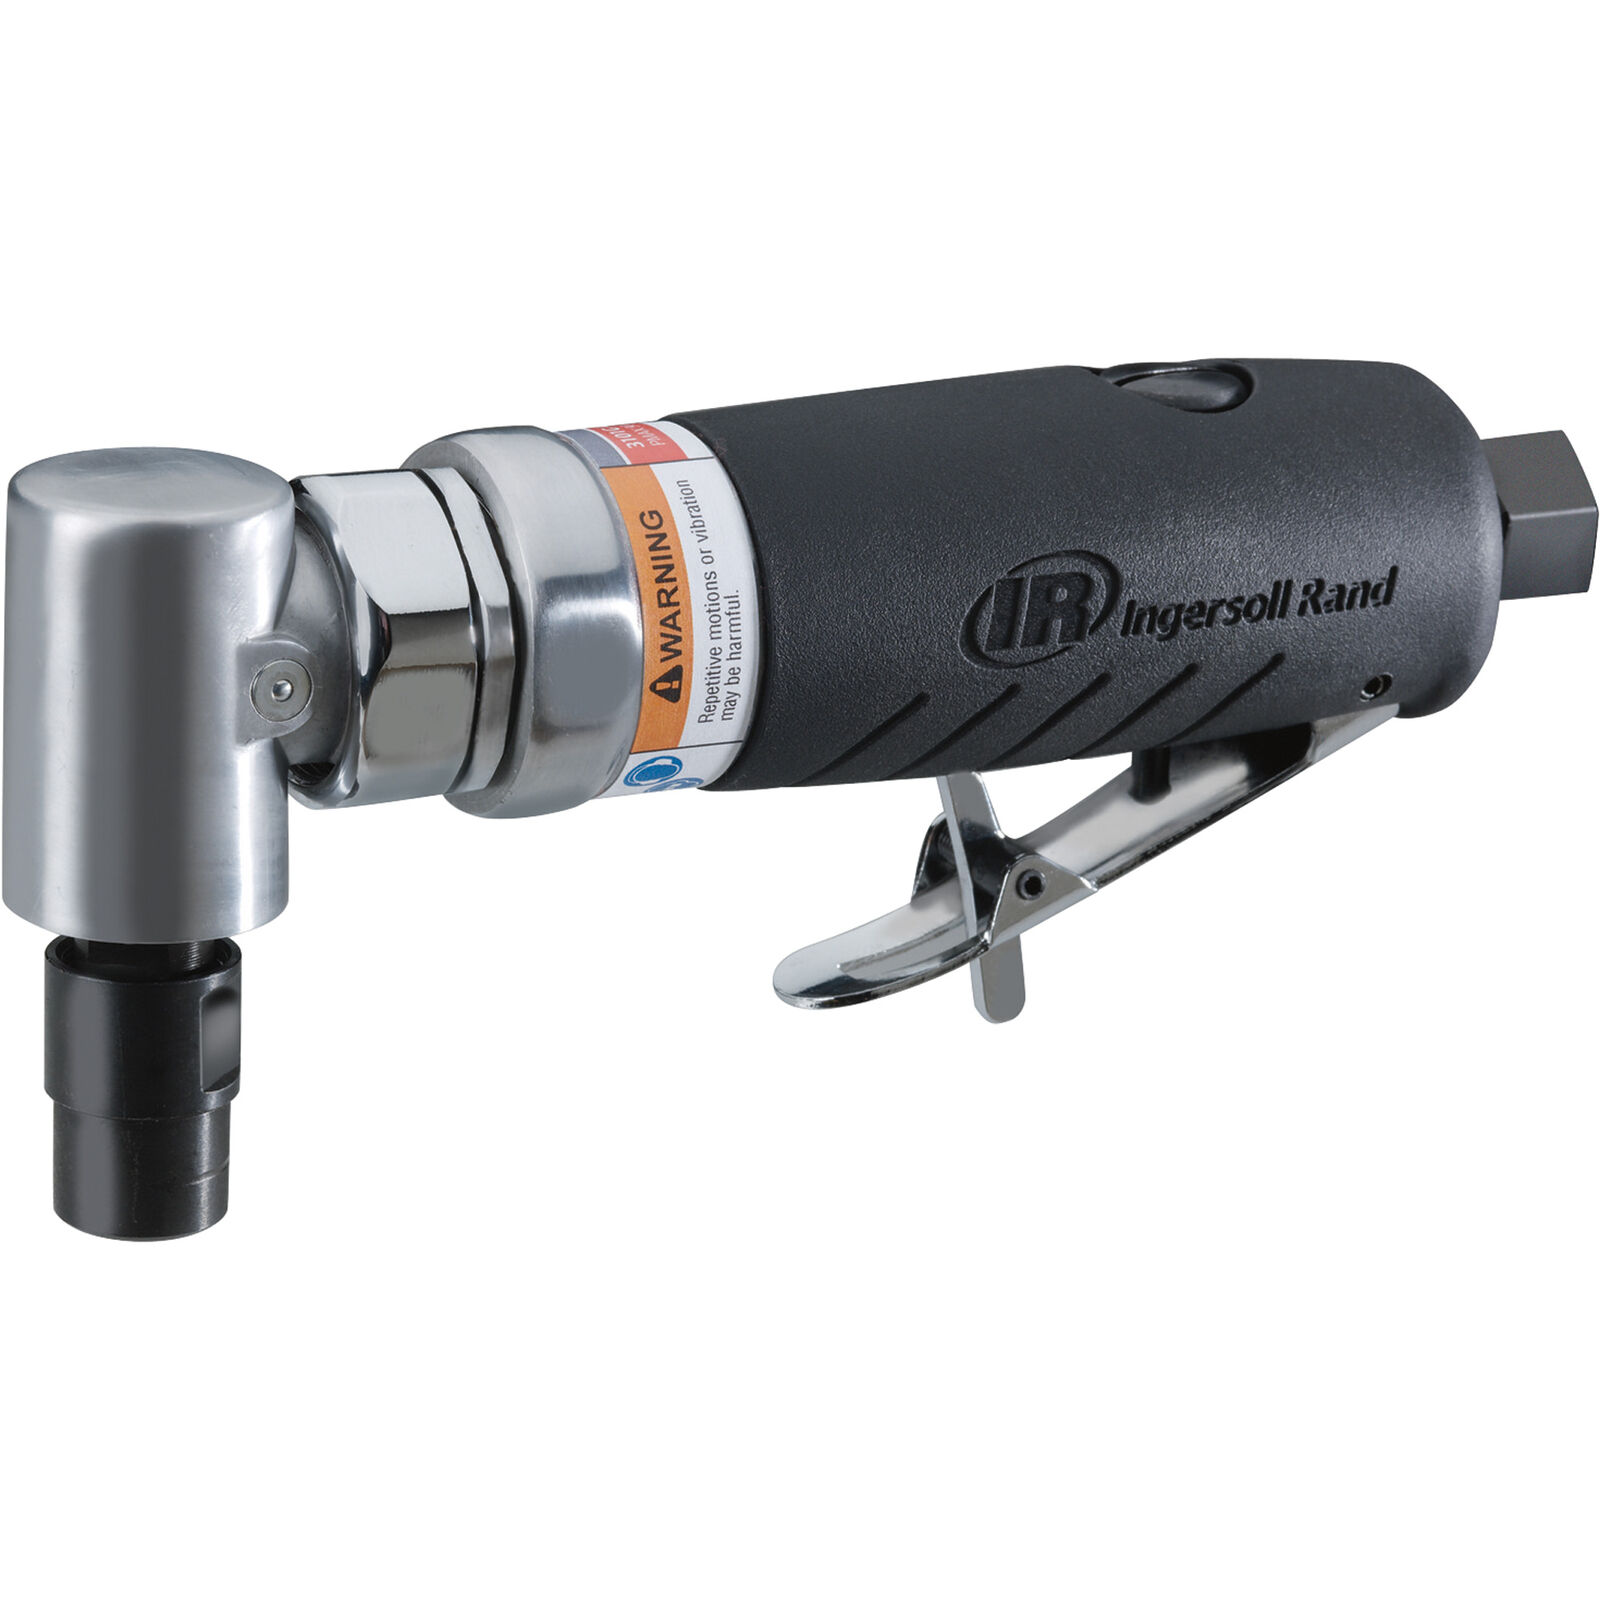 Ingersoll Rand Angle Die Grinder-1/4in #3101G. Buy it now for 76.99